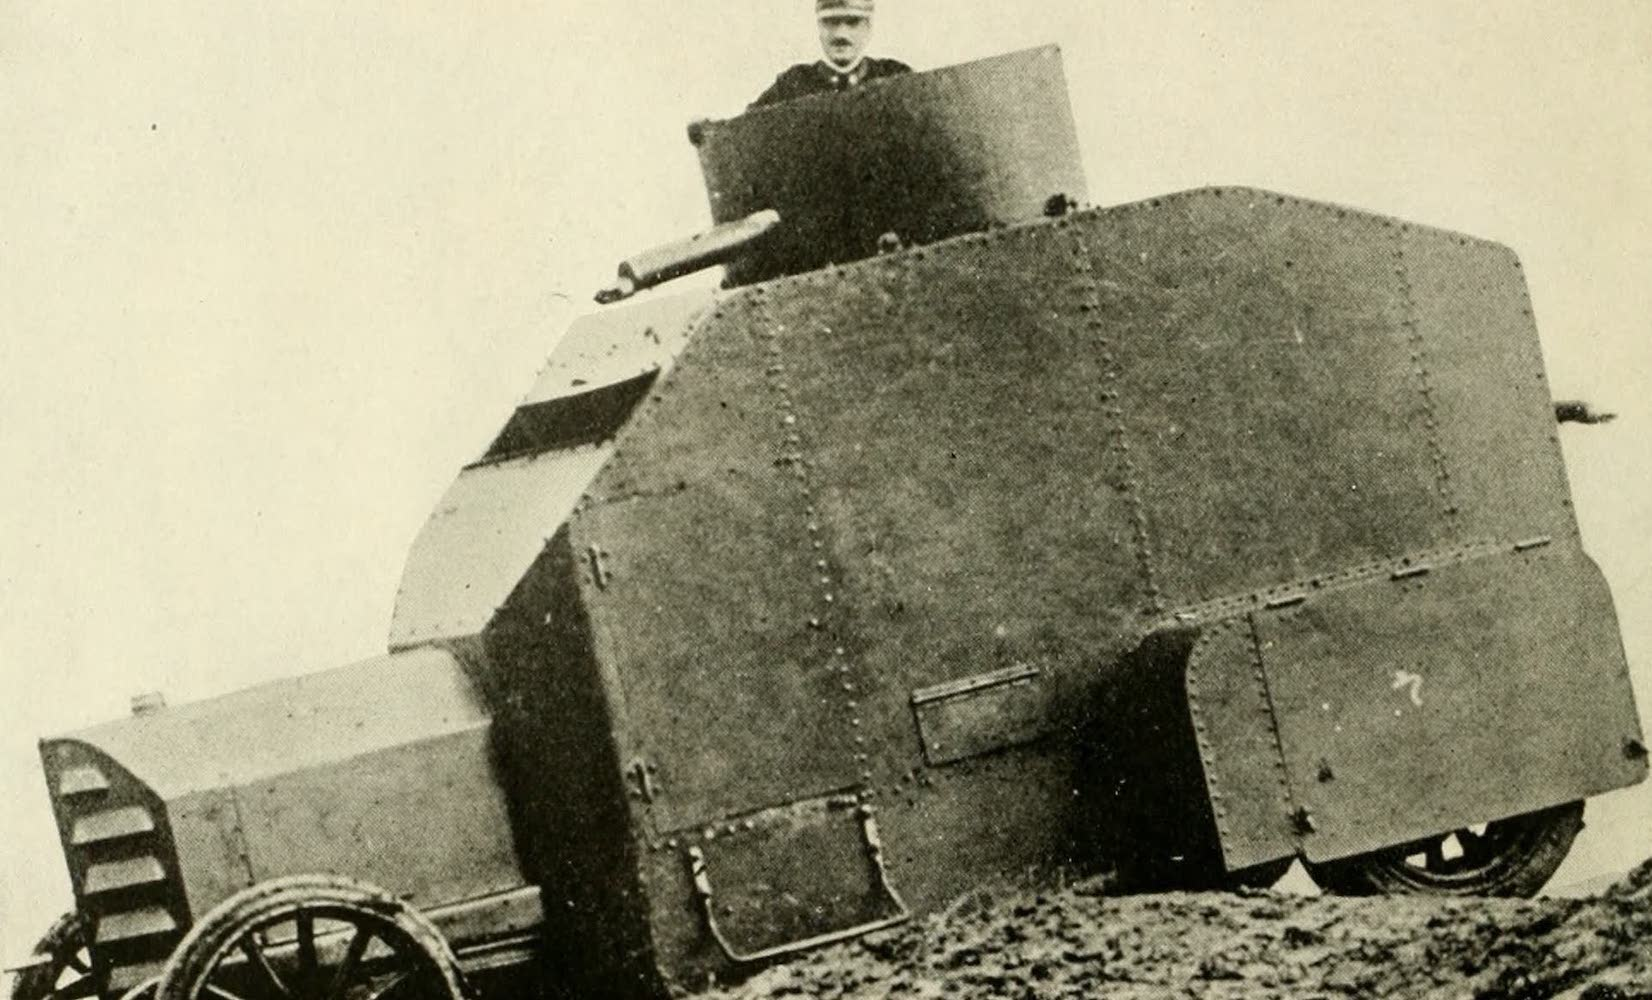 """Laird & Lee's World's War Glimpses - """"Iron-Clad"""" on Wheels, Used in War (1914)"""